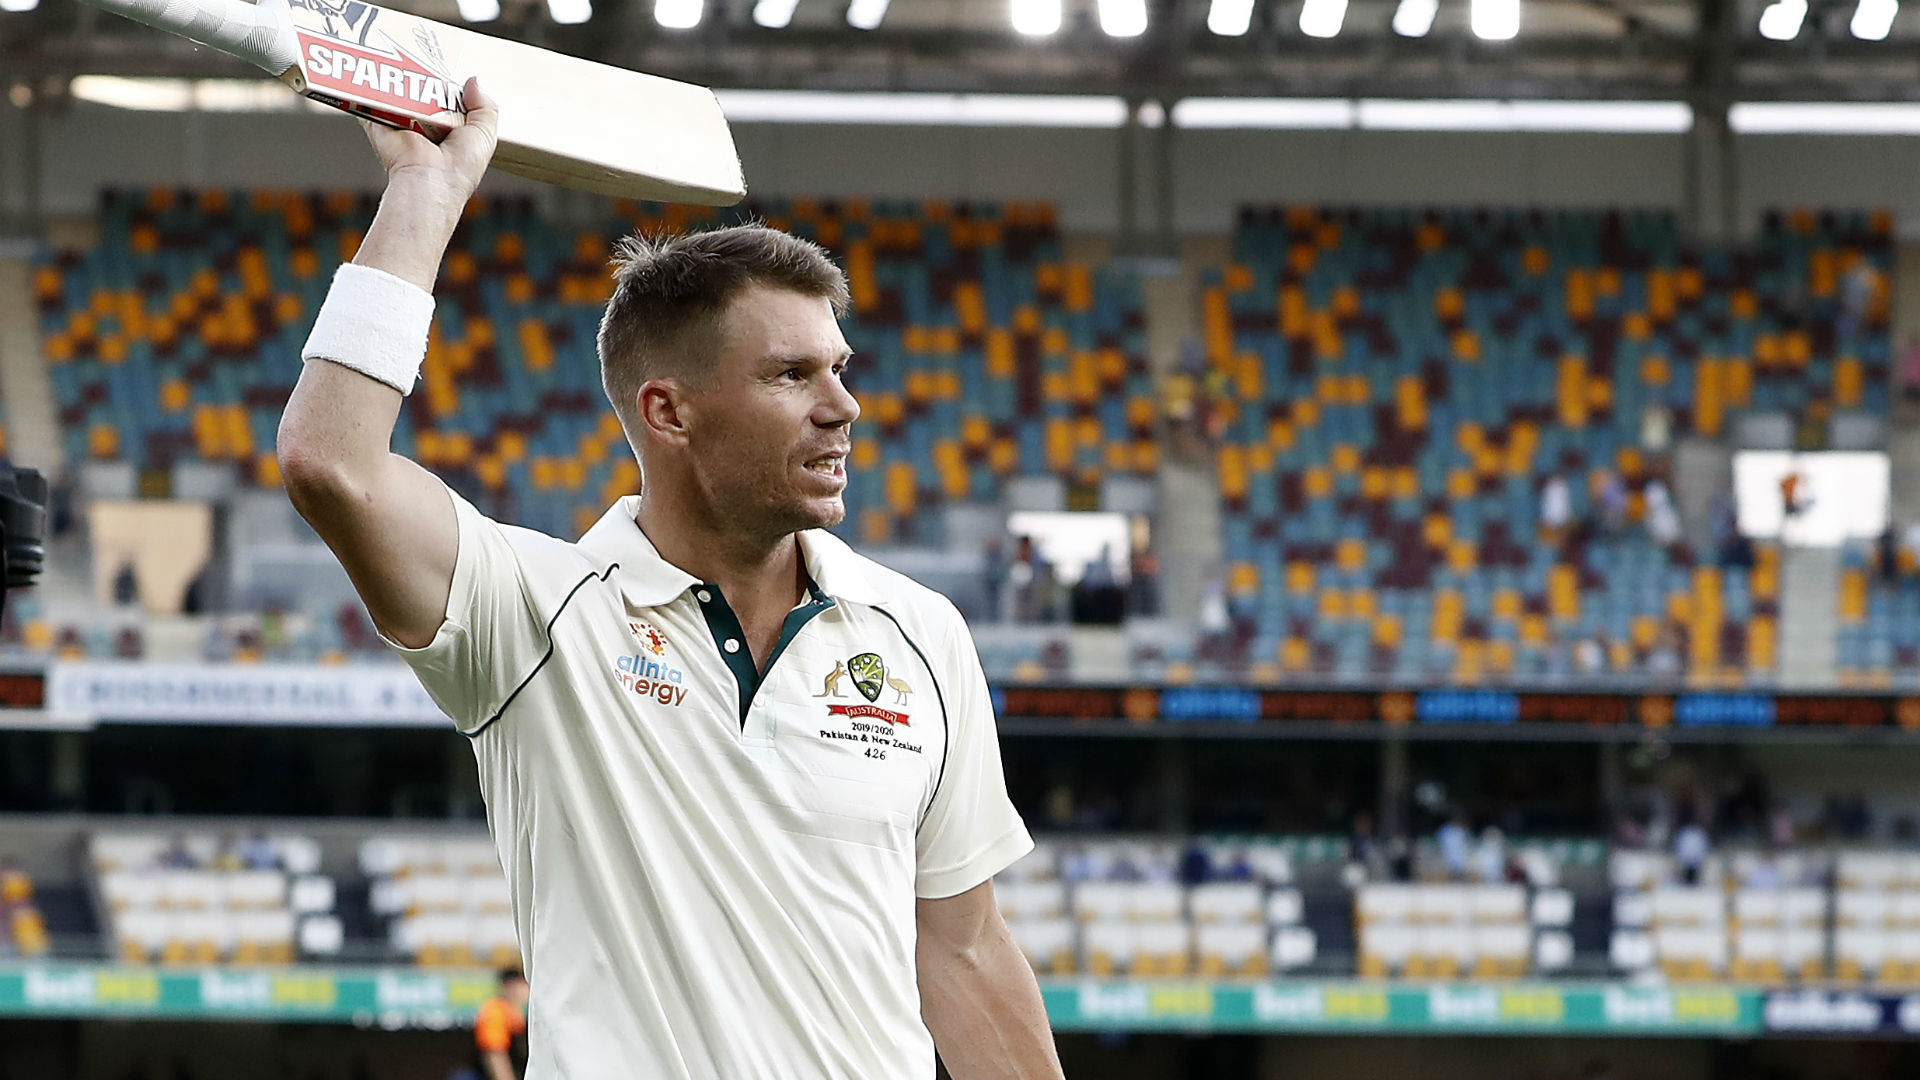 Centurion Warner insists Ashes failure wasn't about pressure